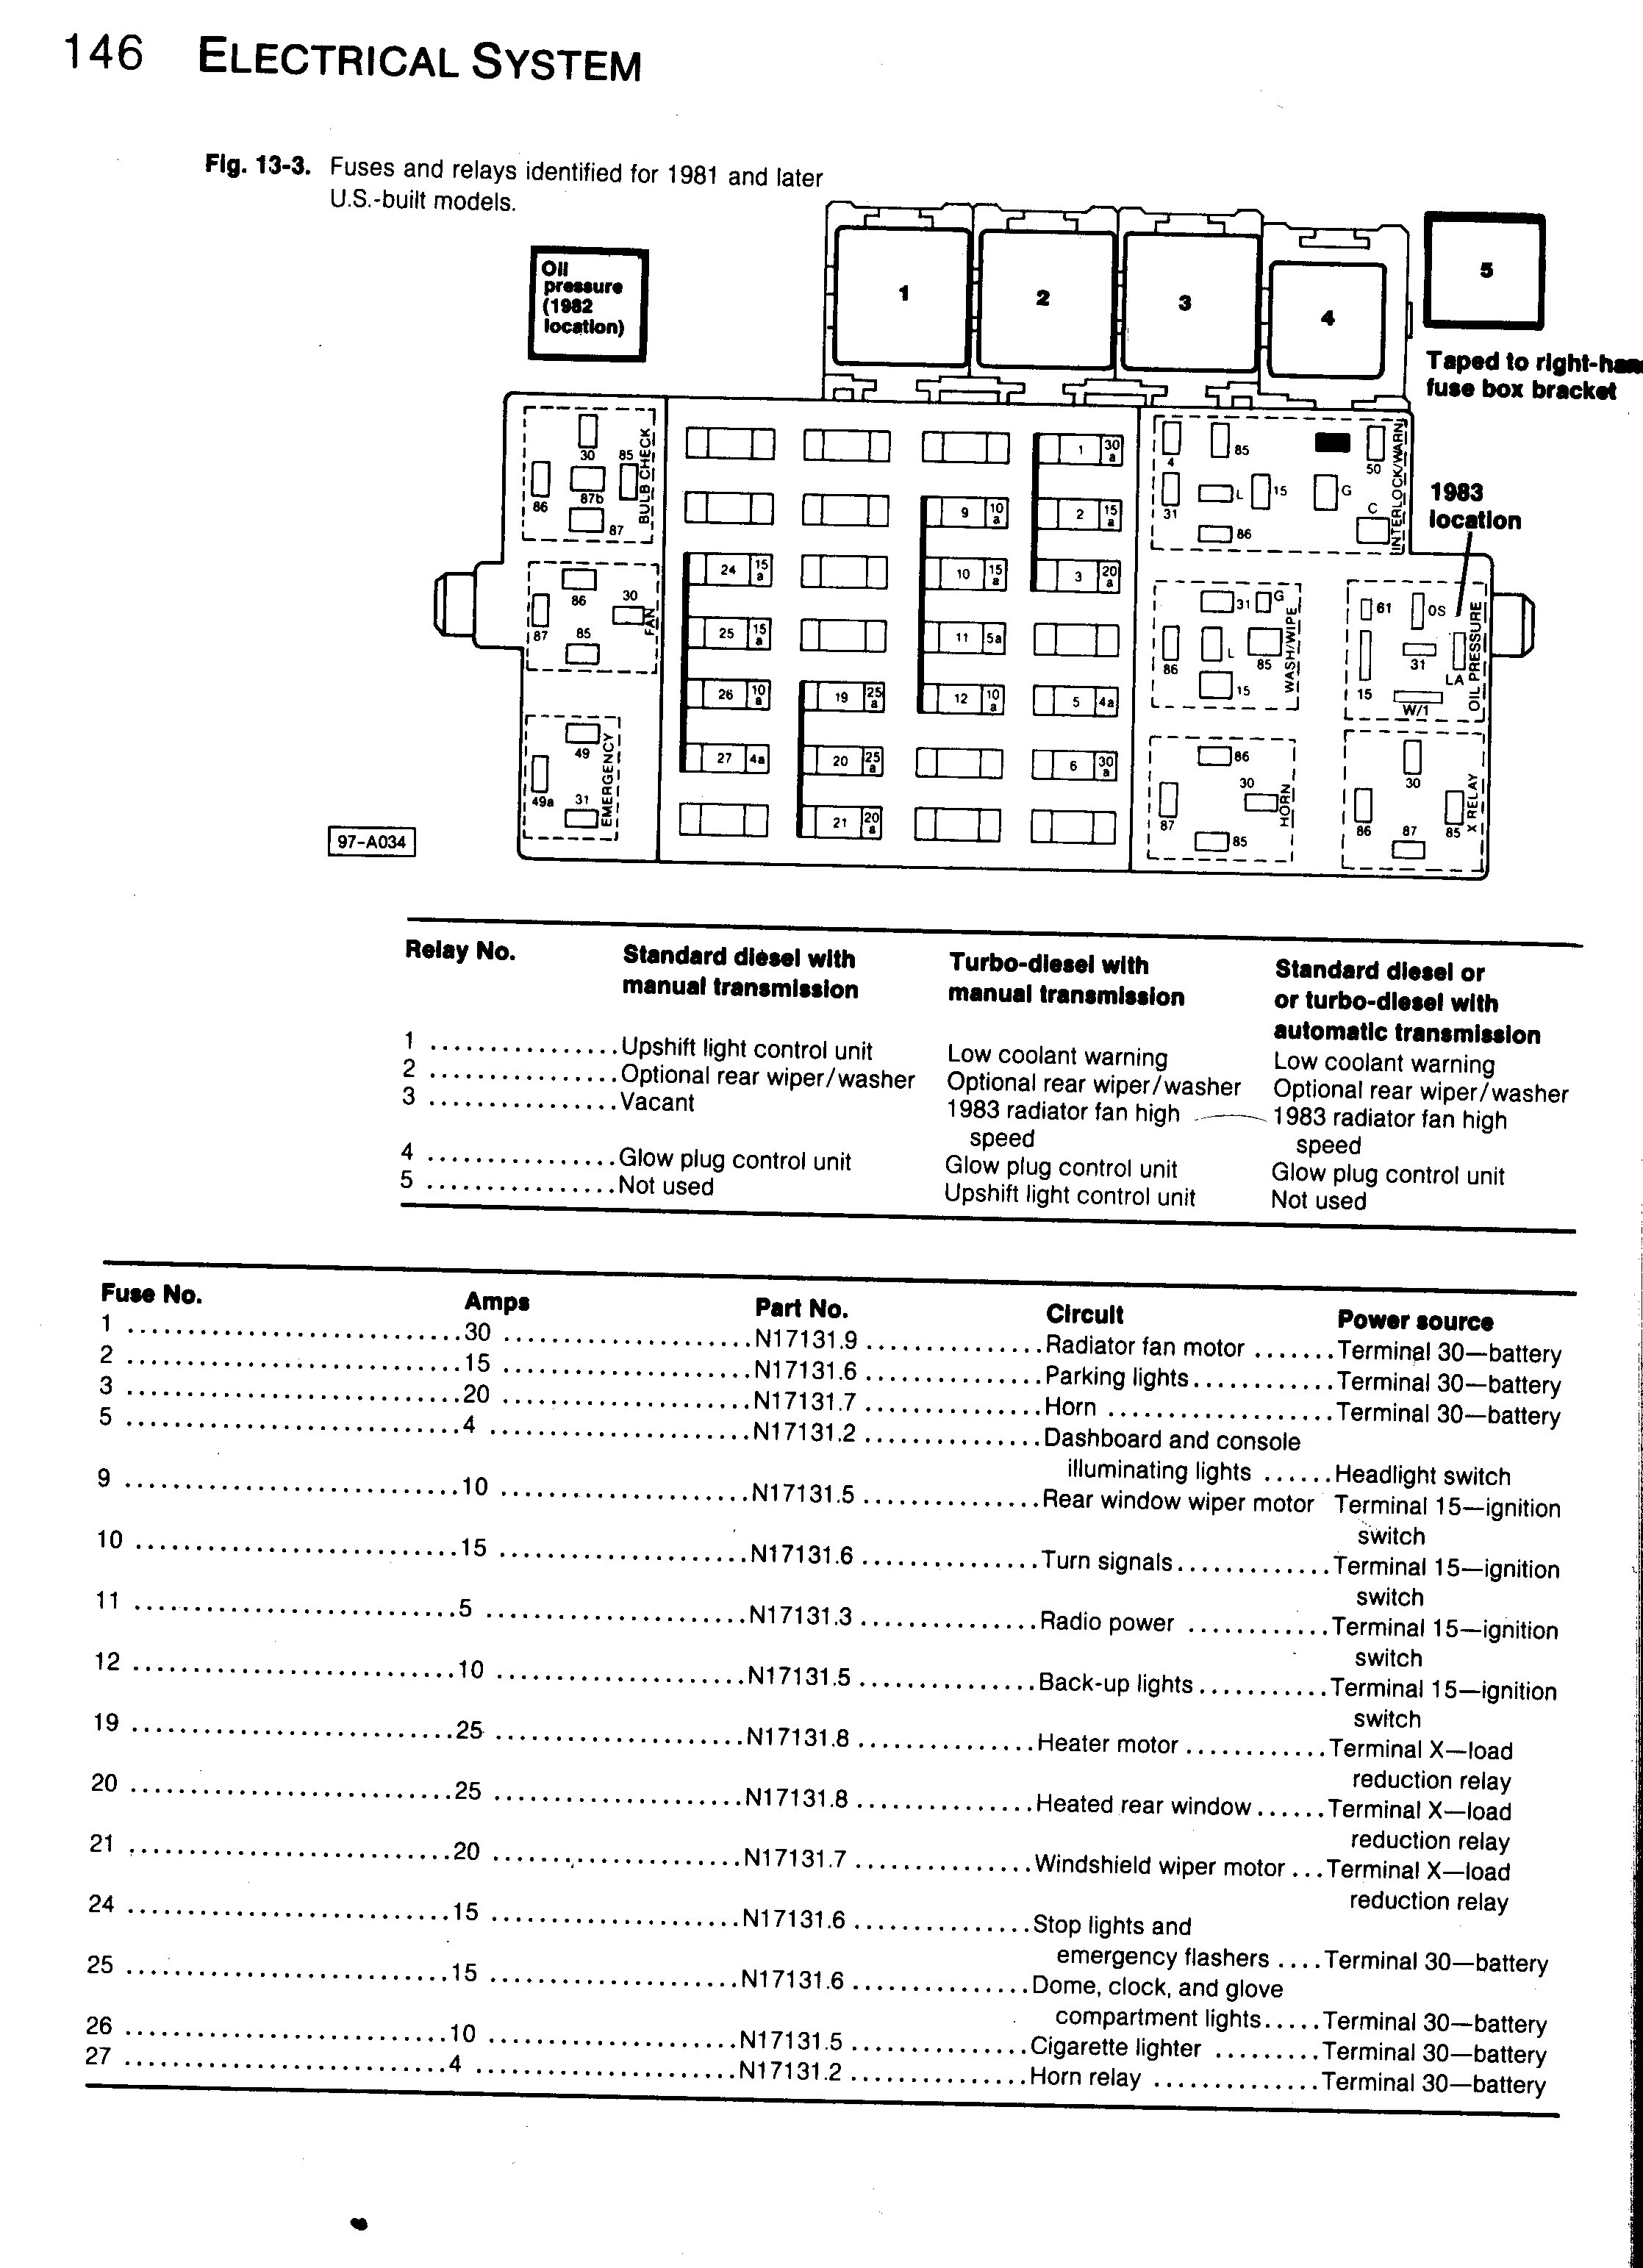 2008 E350 Fuse Box Diagram Worksheet And Wiring Mercedes 2013 Ford Detailed Schematics Rh Jppastryarts Com Super Duty